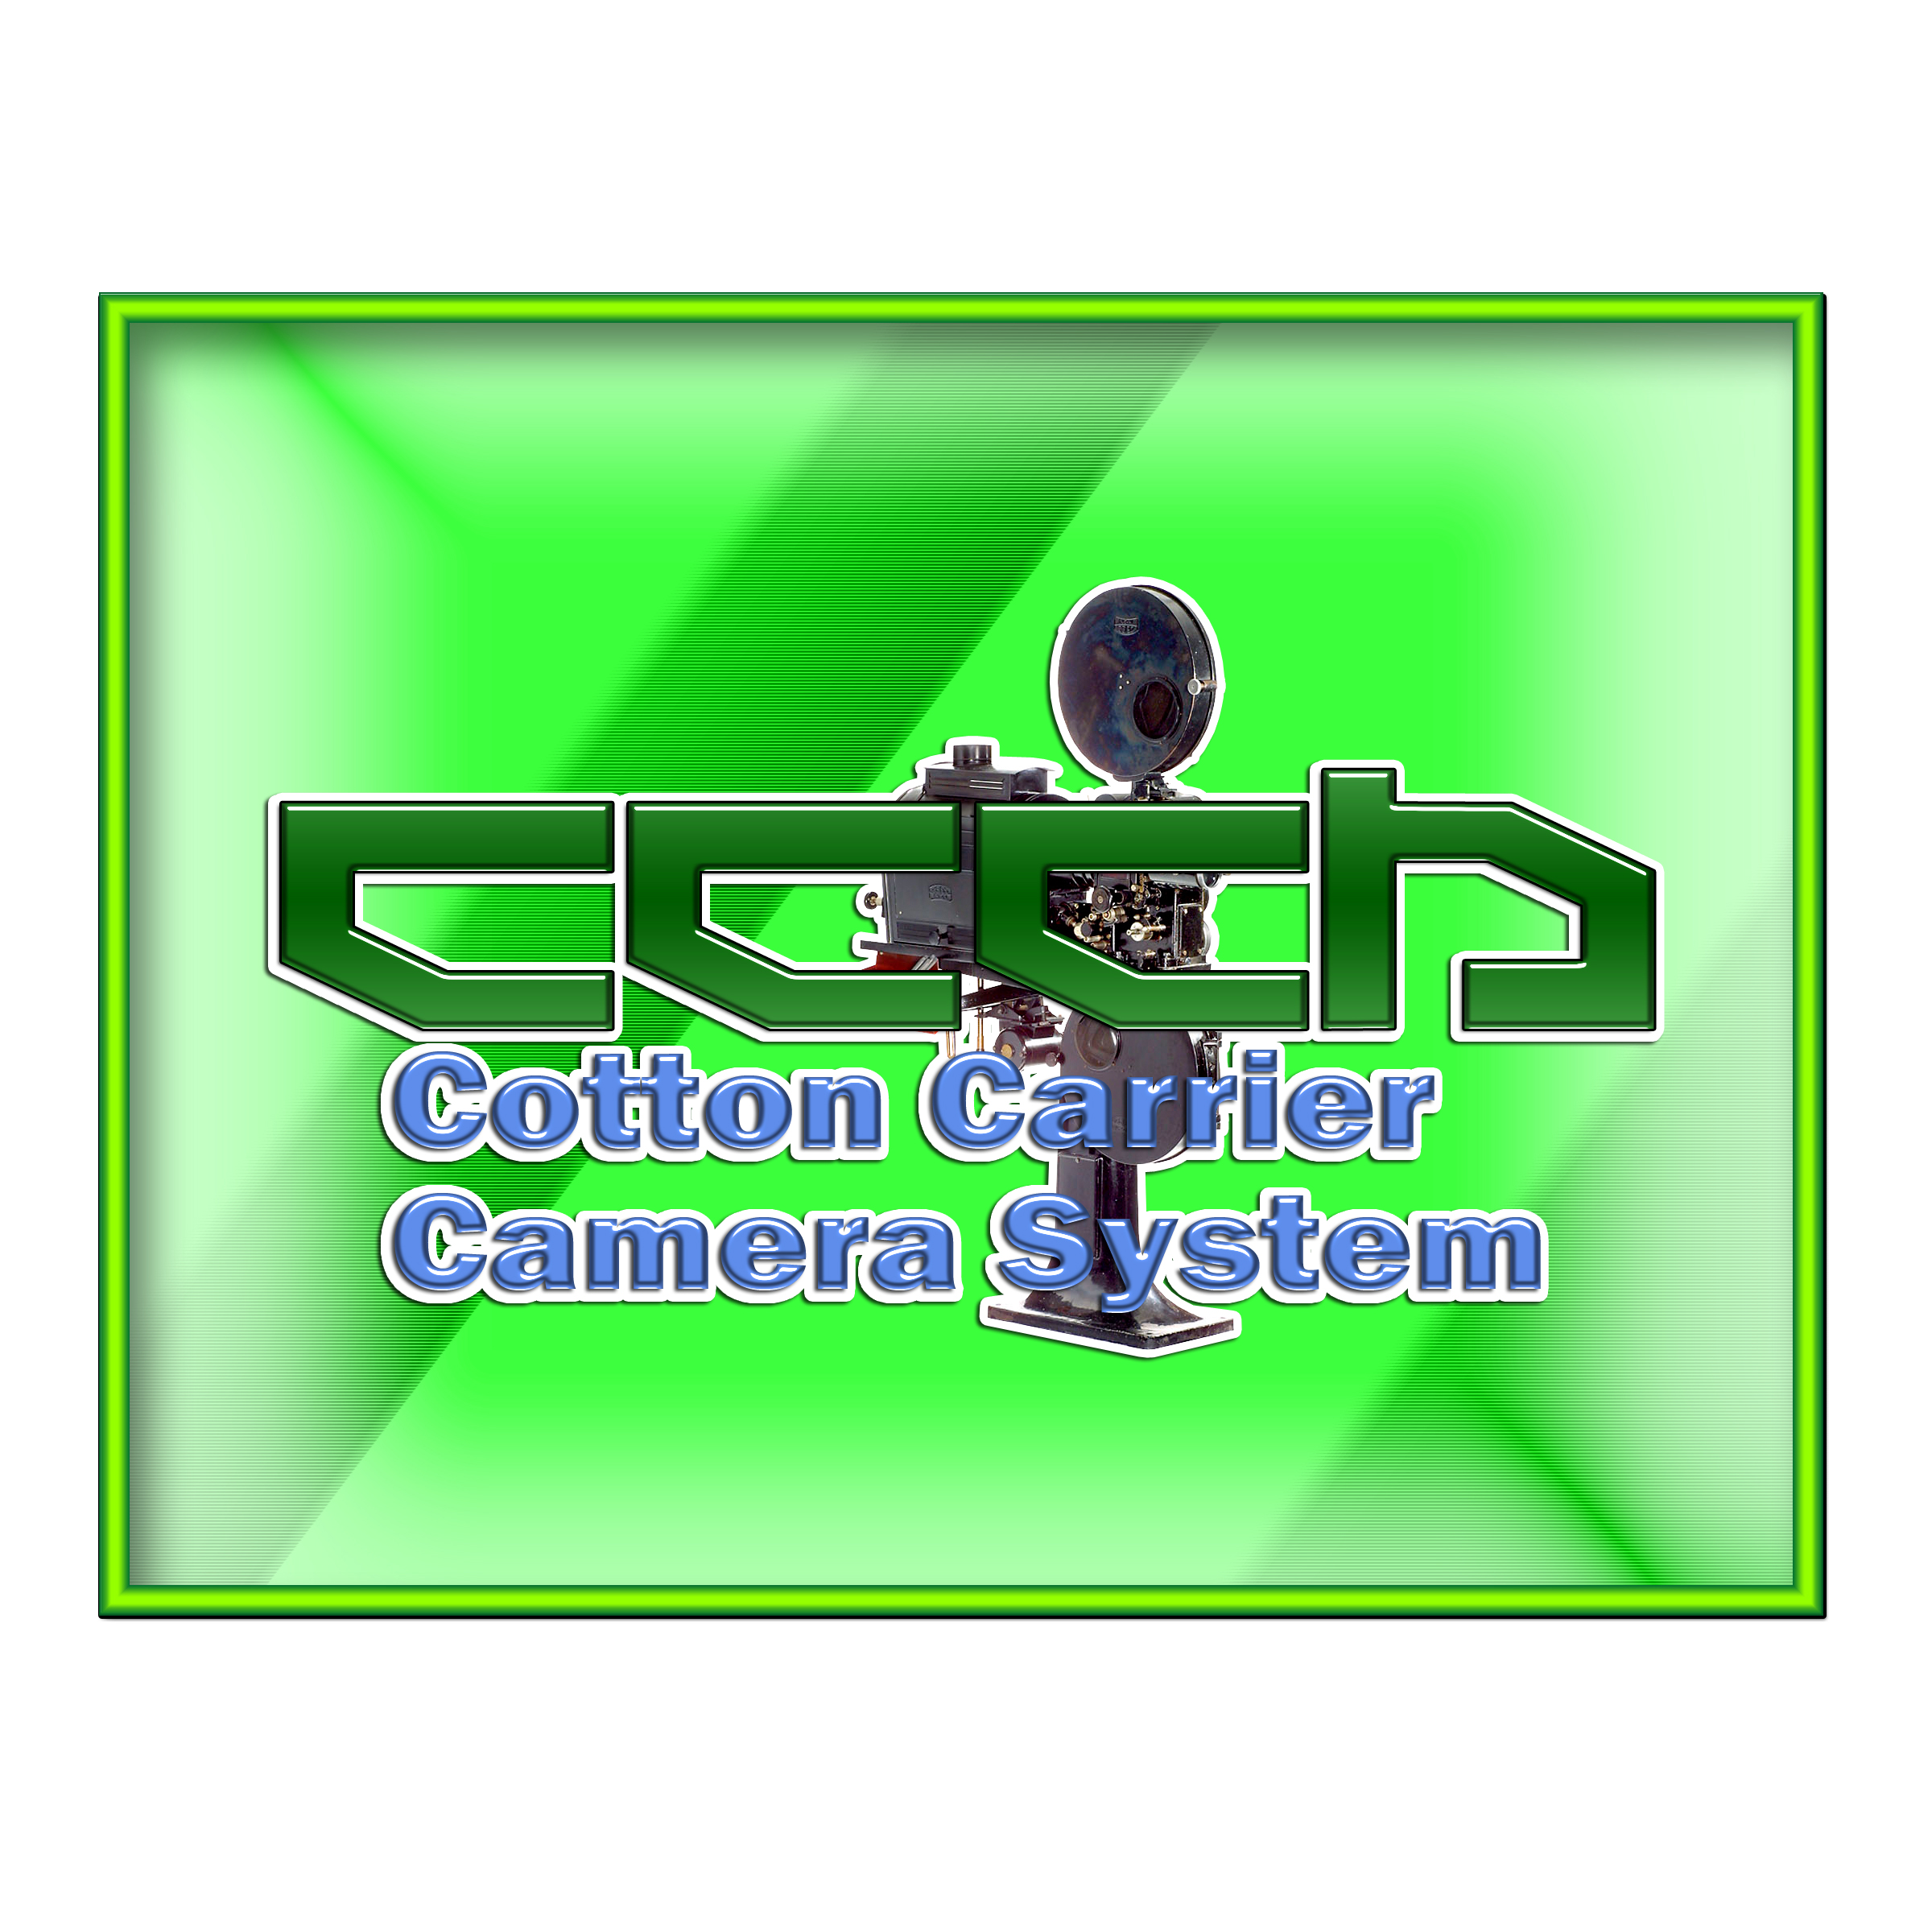 Logo Design by MITUCA ANDREI - Entry No. 8 in the Logo Design Contest Cotton Carrier Camera Systems Logo Design.